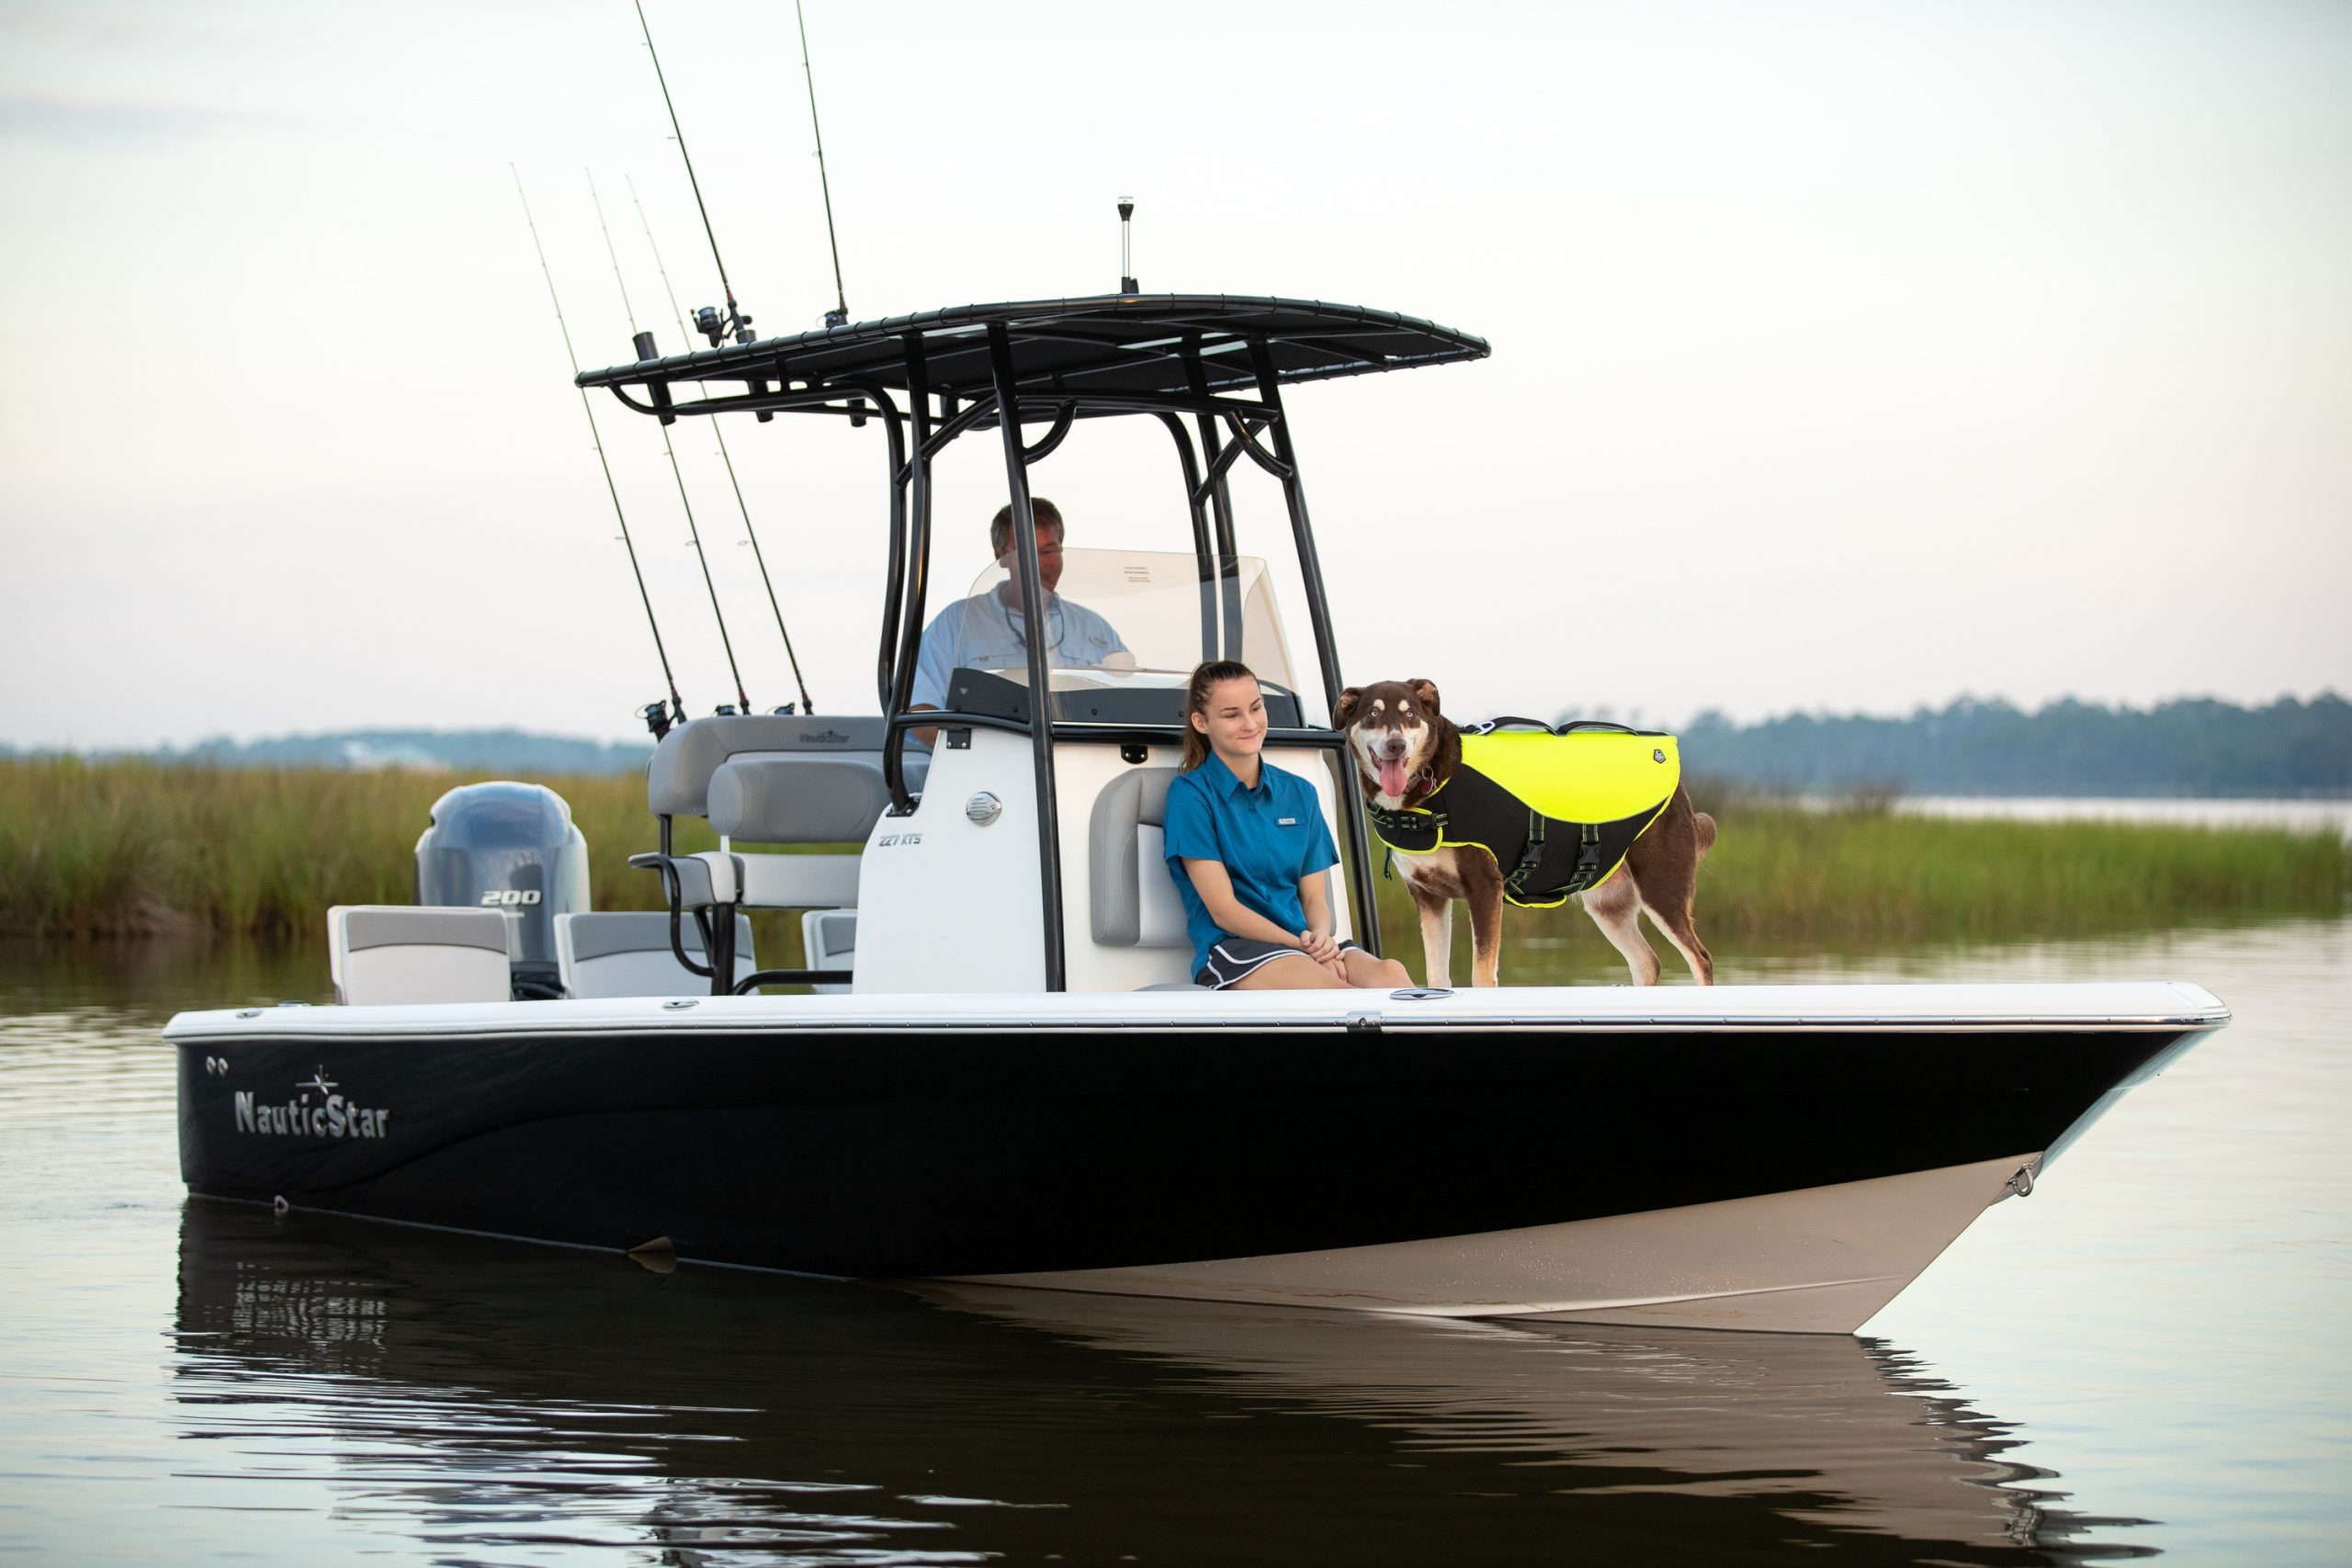 A family and dog sit at the helm and in the deck of a NauticStar 227XTS boat